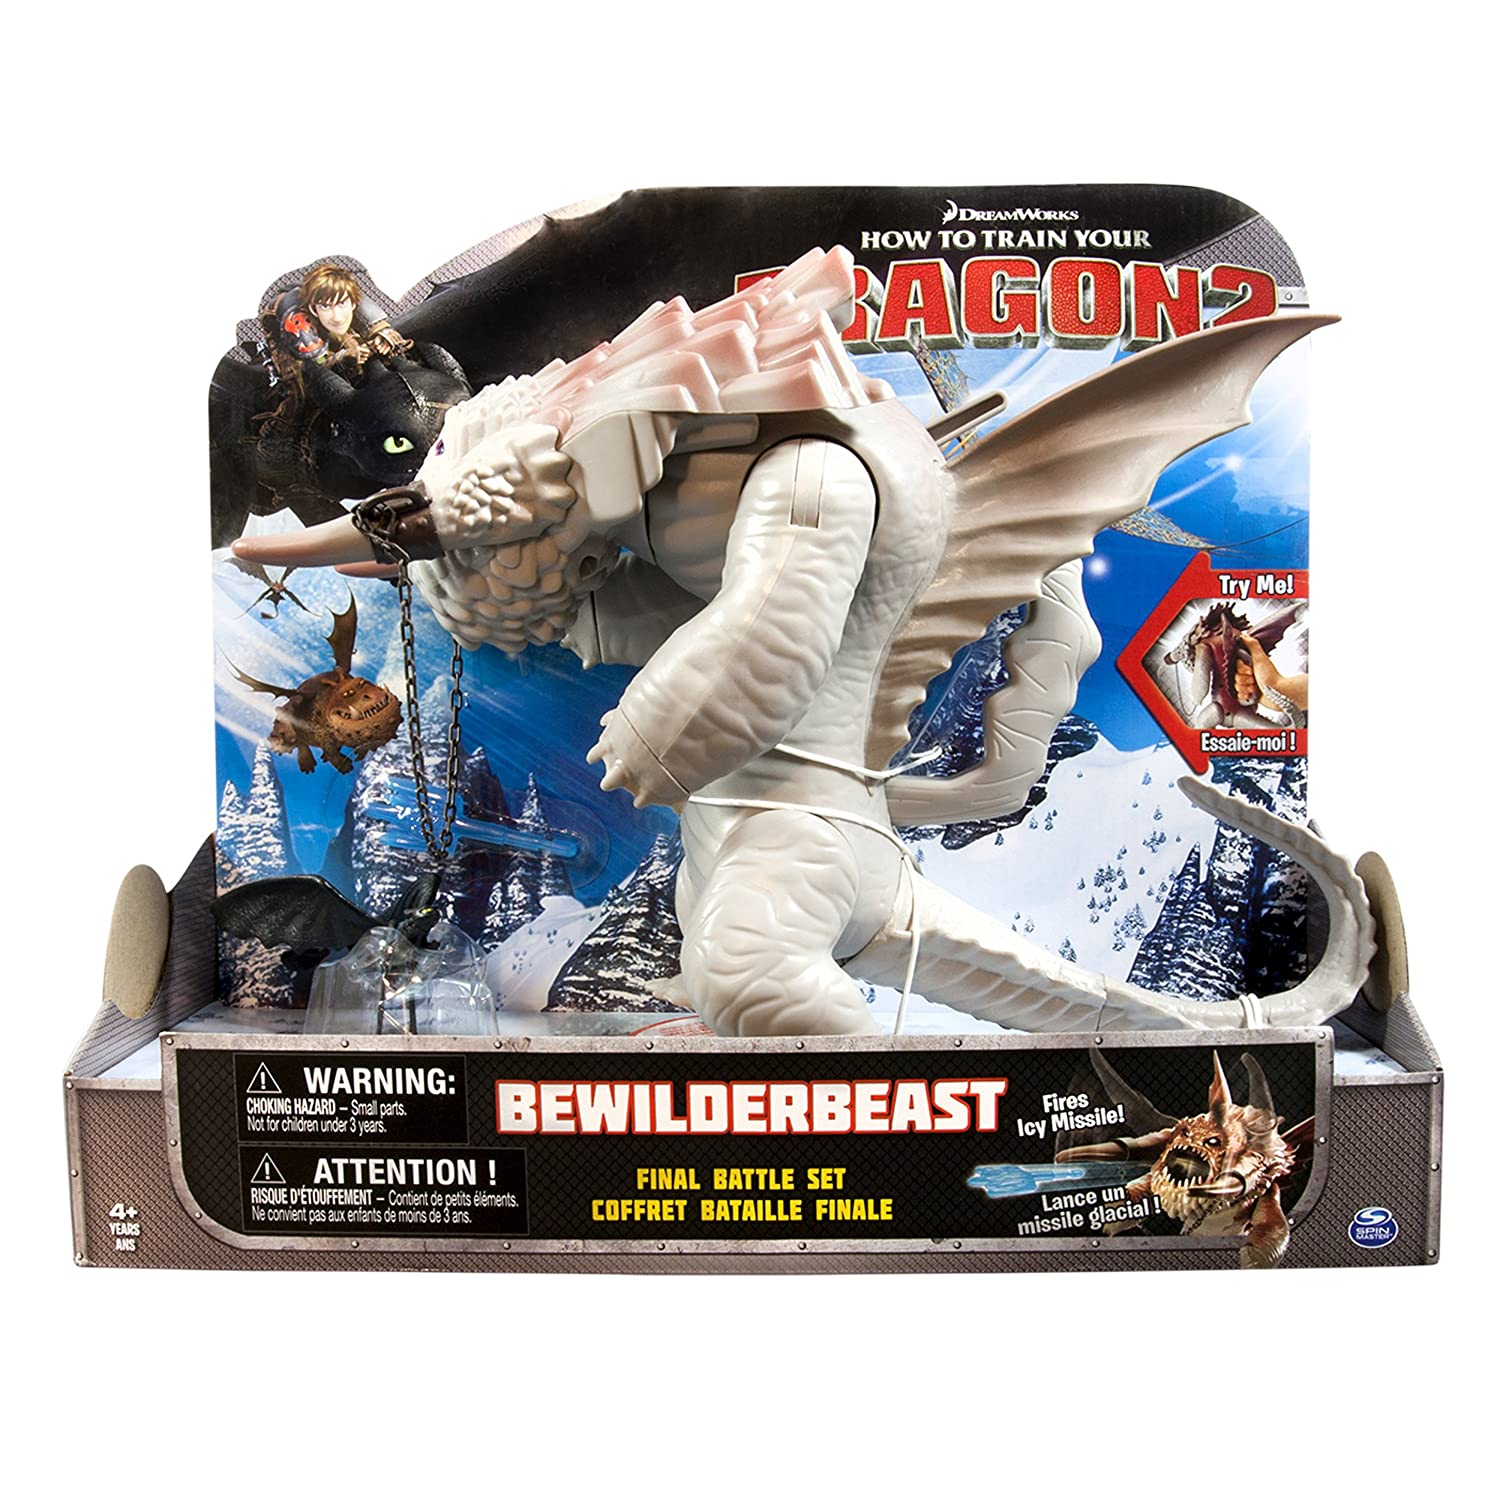 Amazon: Dreamworks Dragons: How To Train Your Dragon 2  Bewilderbeast  Final Battle Set: Toys & Games